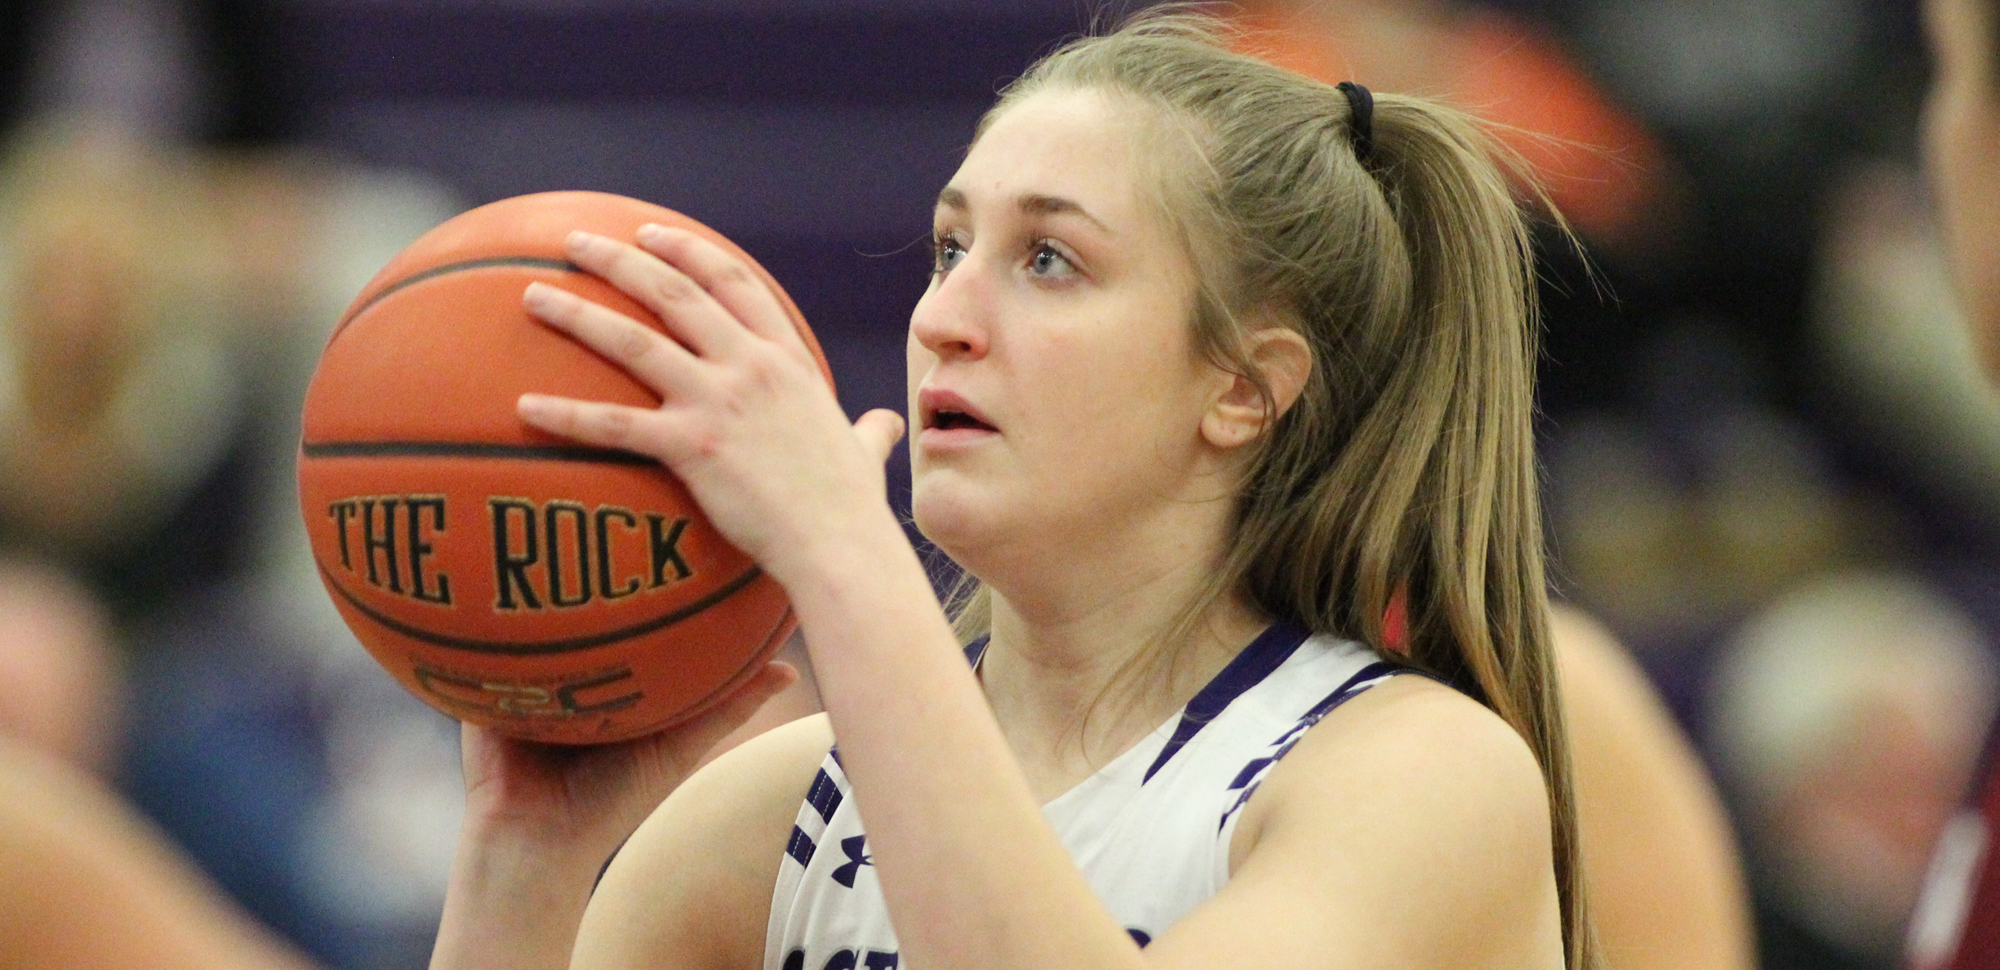 Freshman Emily Shurina scored a game-high 16 points on 5-of-6 shooting from the floor in Scranton's 72-51 win at Moravian on Wednesday night. © Photo by Timothy R. Dougherty / doubleeaglephotography.com